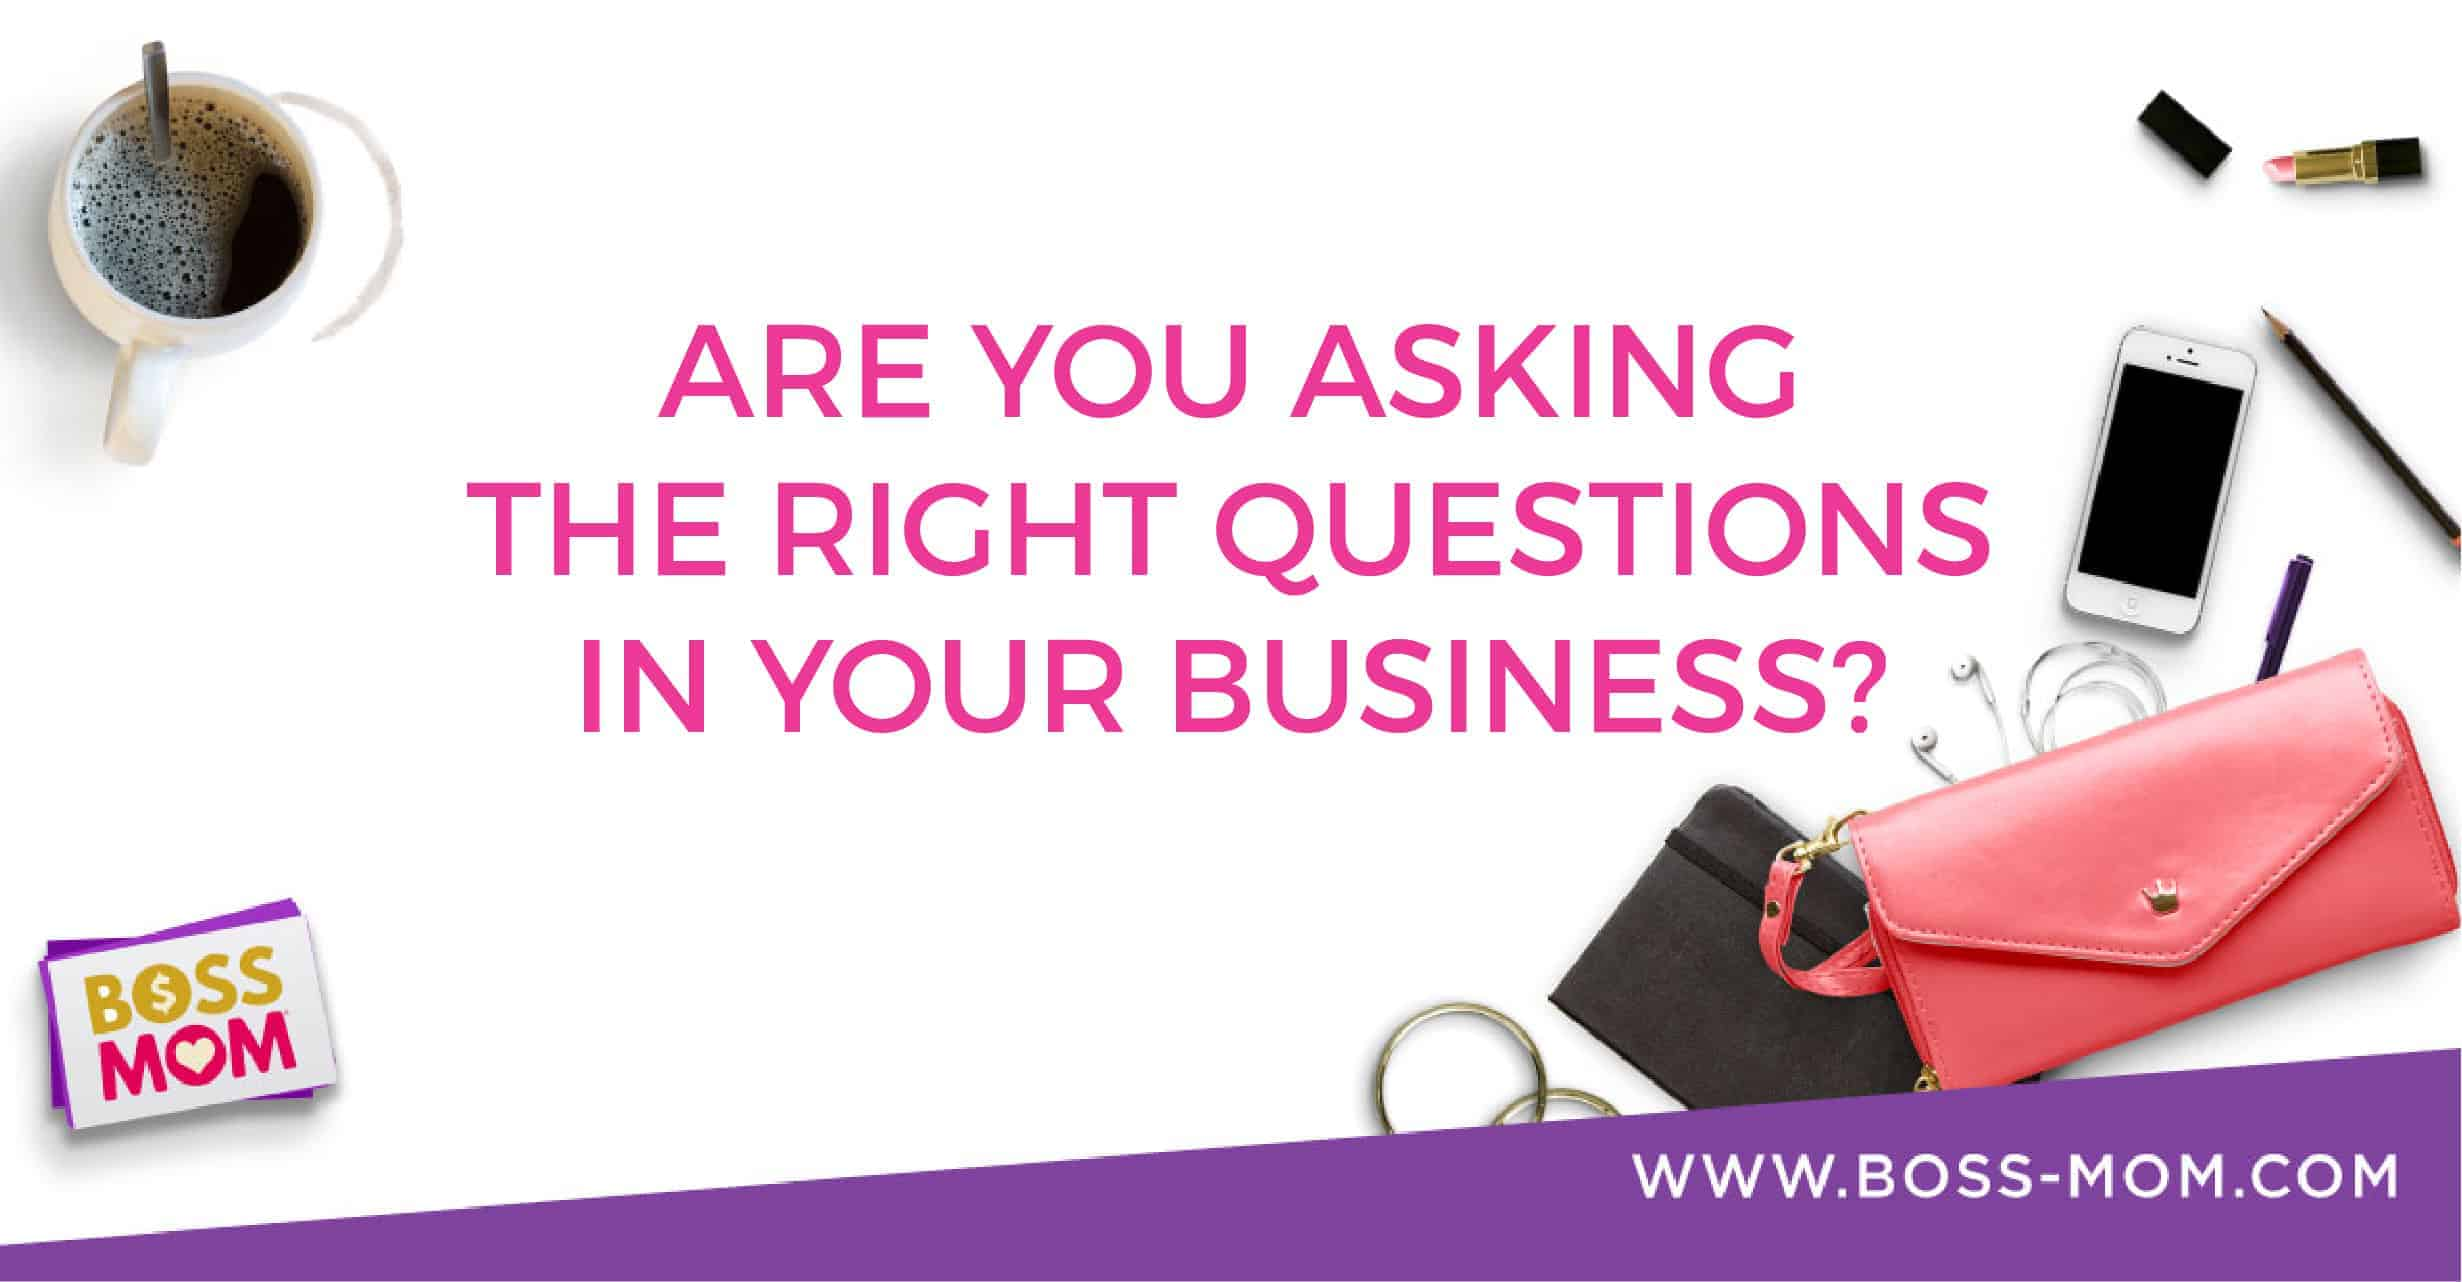 Episode 196: Are You Asking the Right Questions In Your Business with Dana